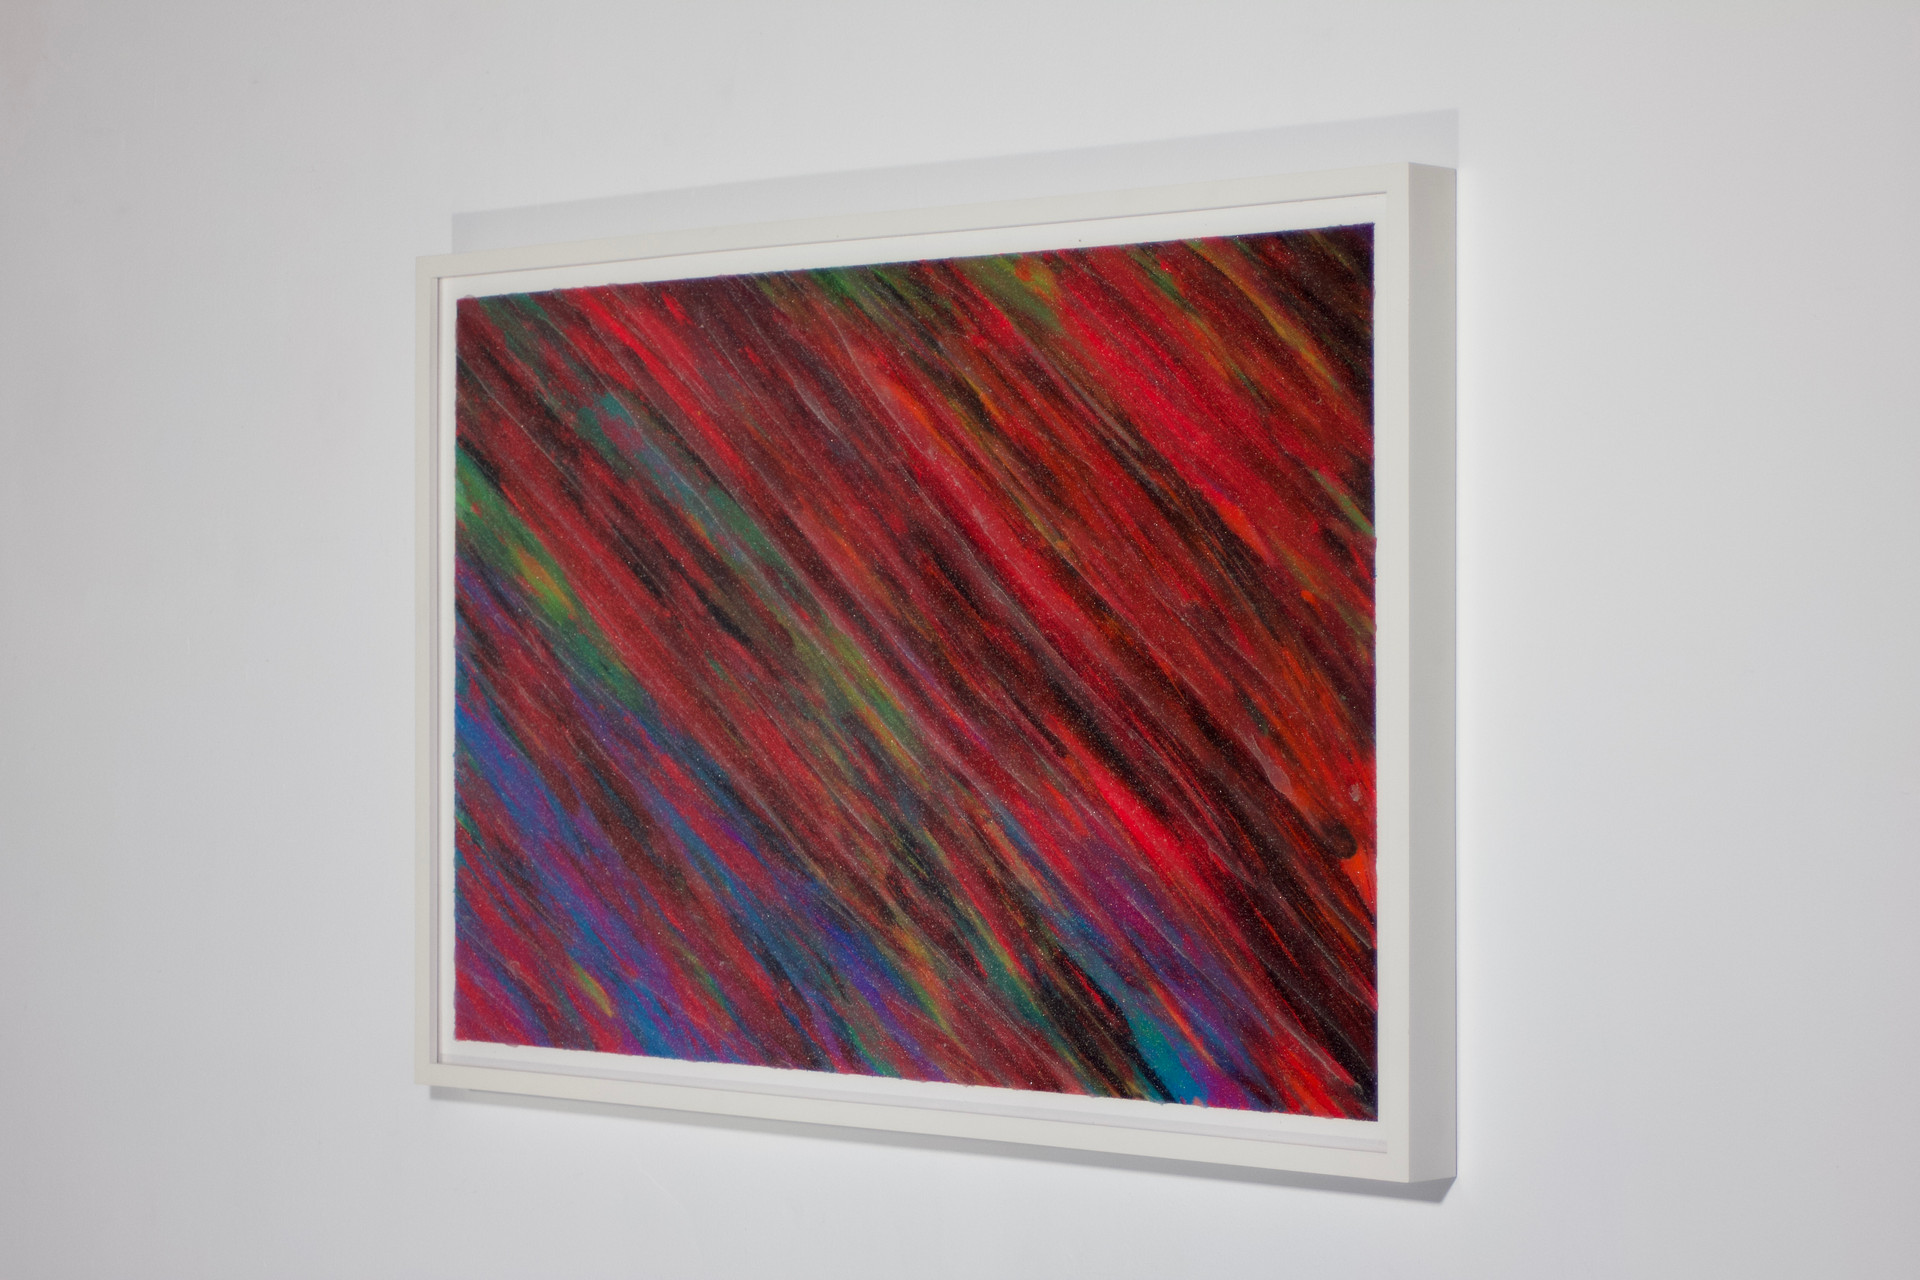 """2020  19.25"""" x 28.5"""" x 1.5"""" paper acrylic paint, silicone, glass oxide white frame  Available $250"""